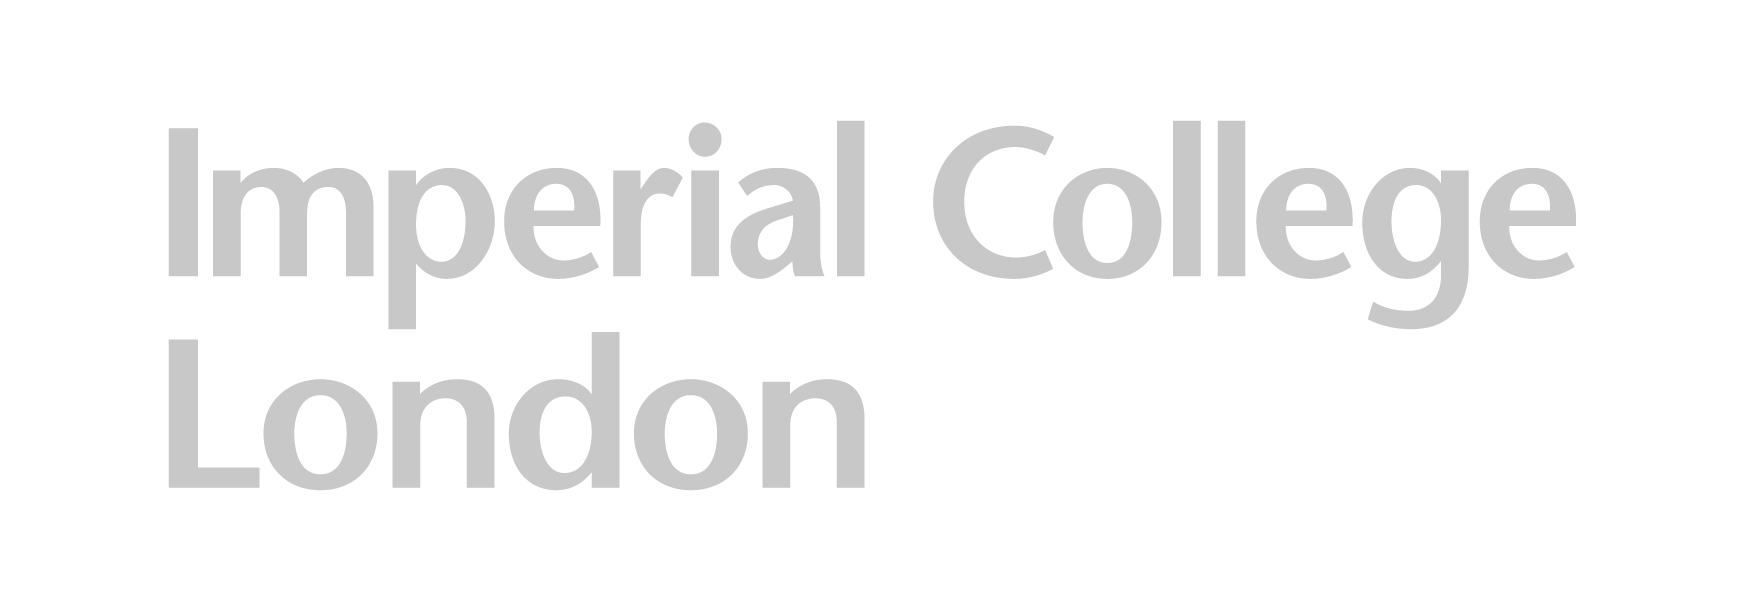 Imperial_College_London_grey.png